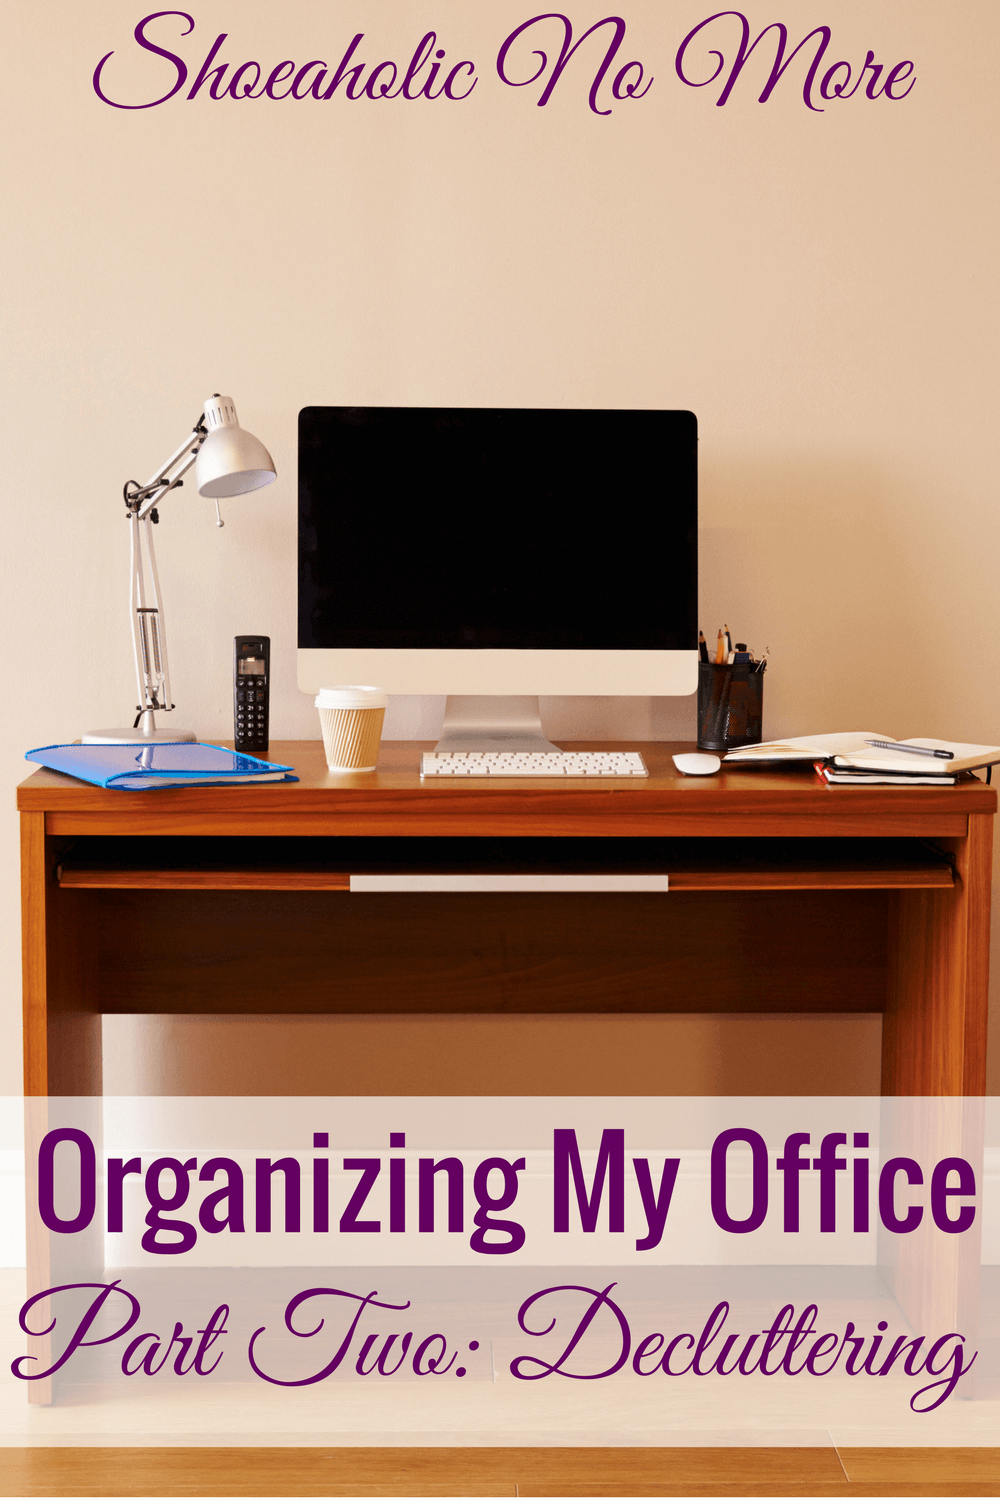 Check out how this blogger decluttered her home office and organized her business!